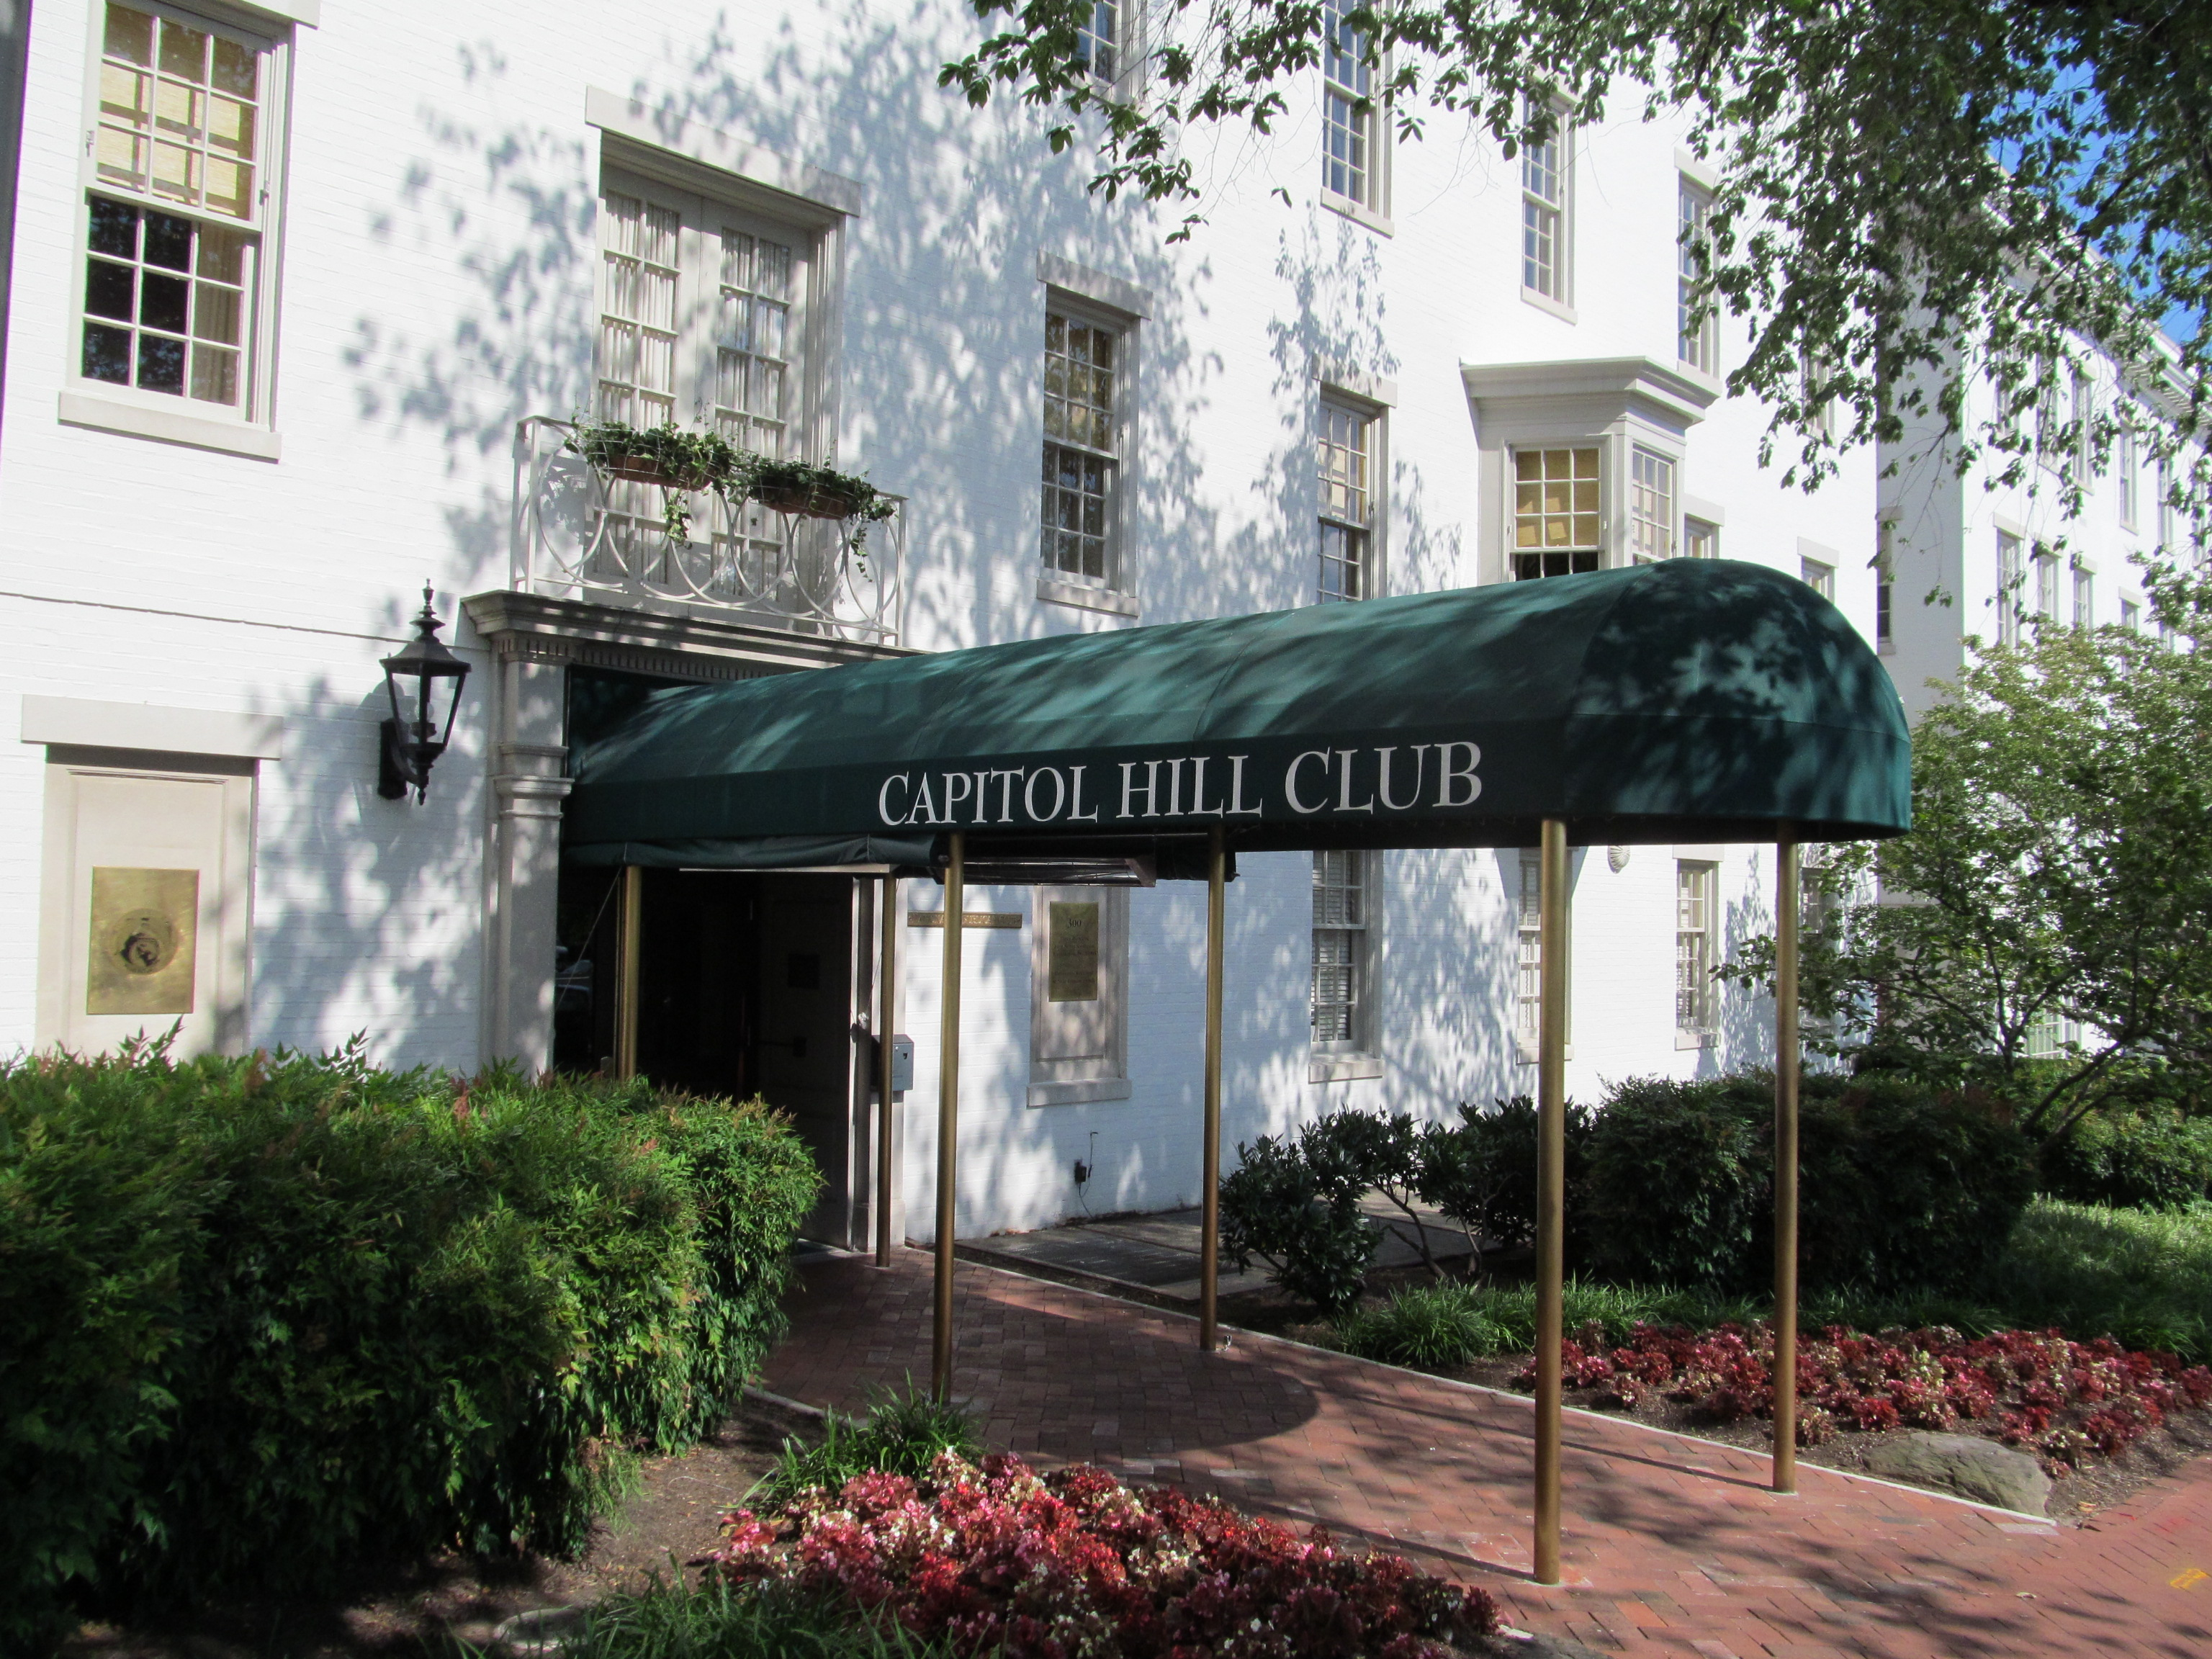 Capitol Hill Club Presidential Dining Room